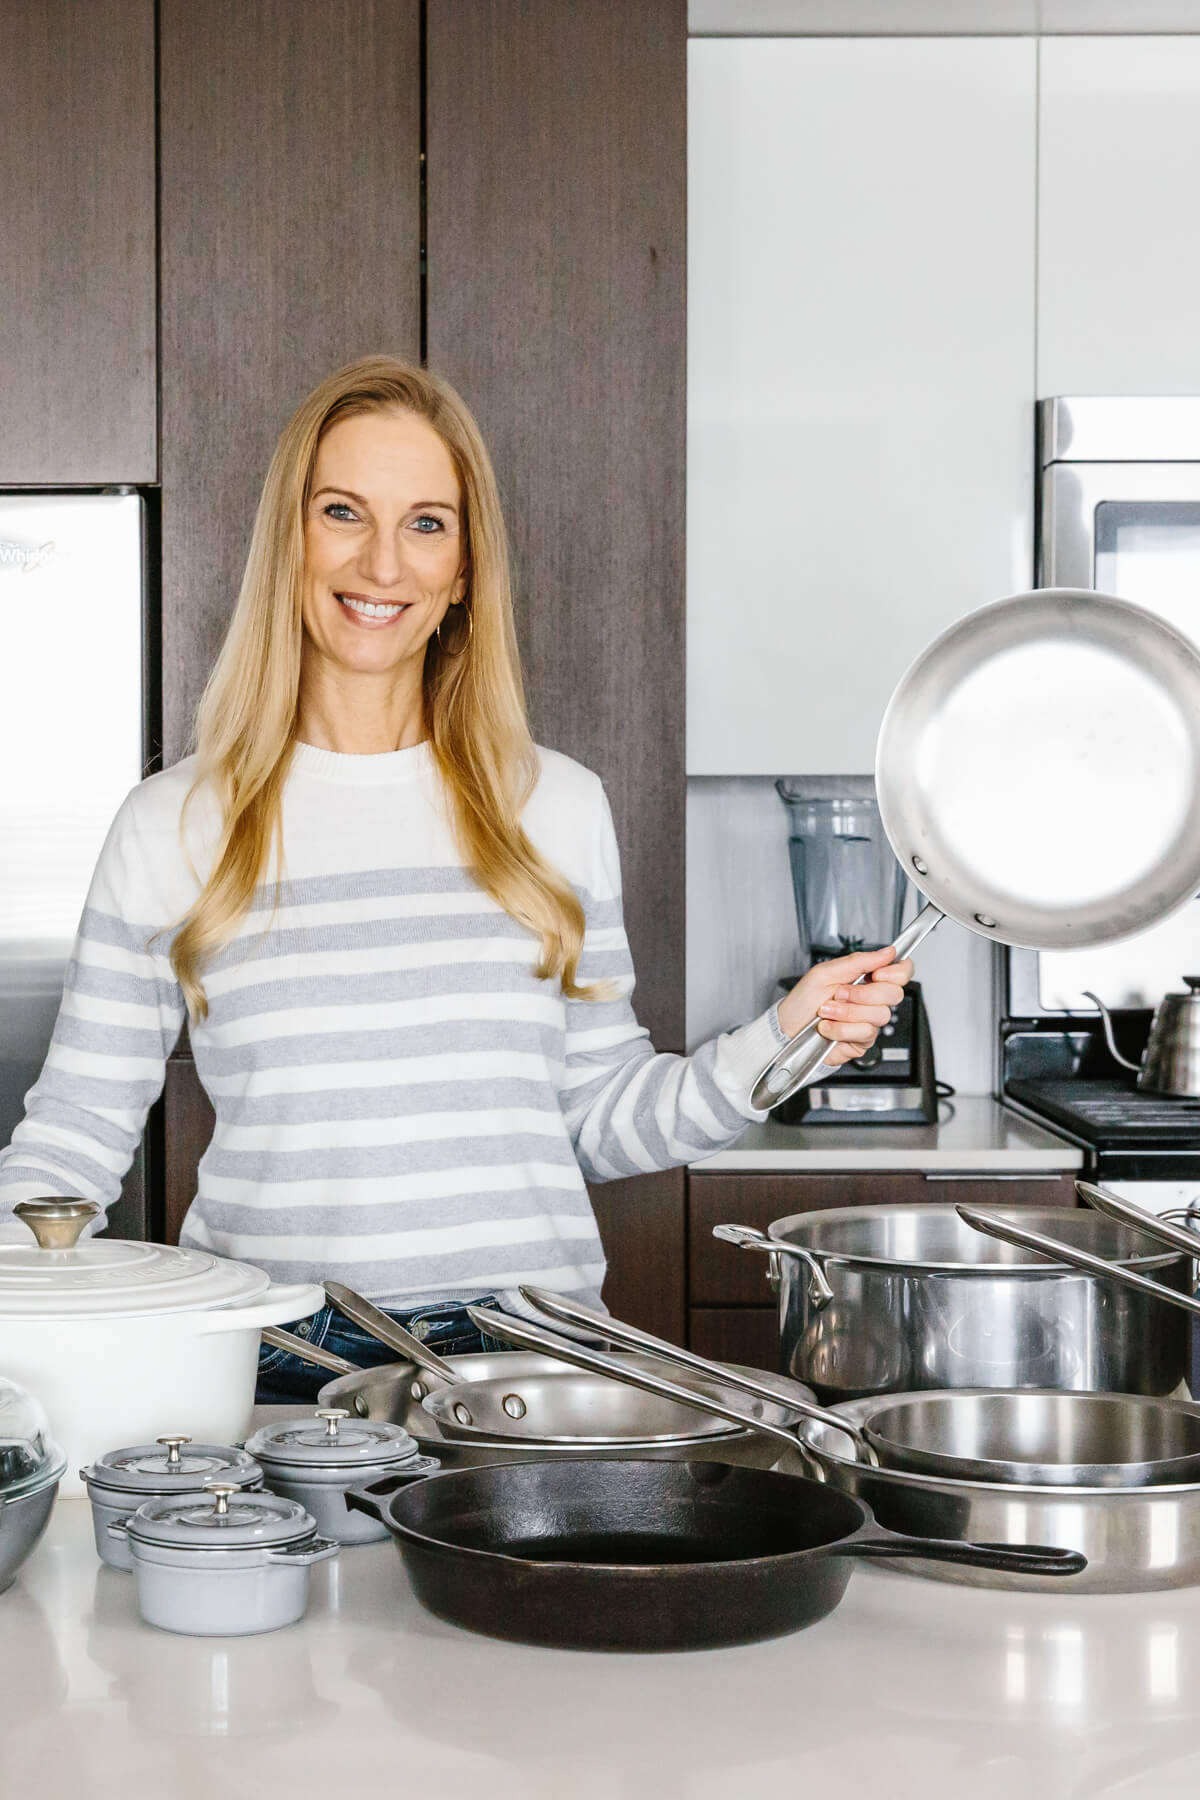 The best cookware types all on a counter with girl holding stainless steel pan.